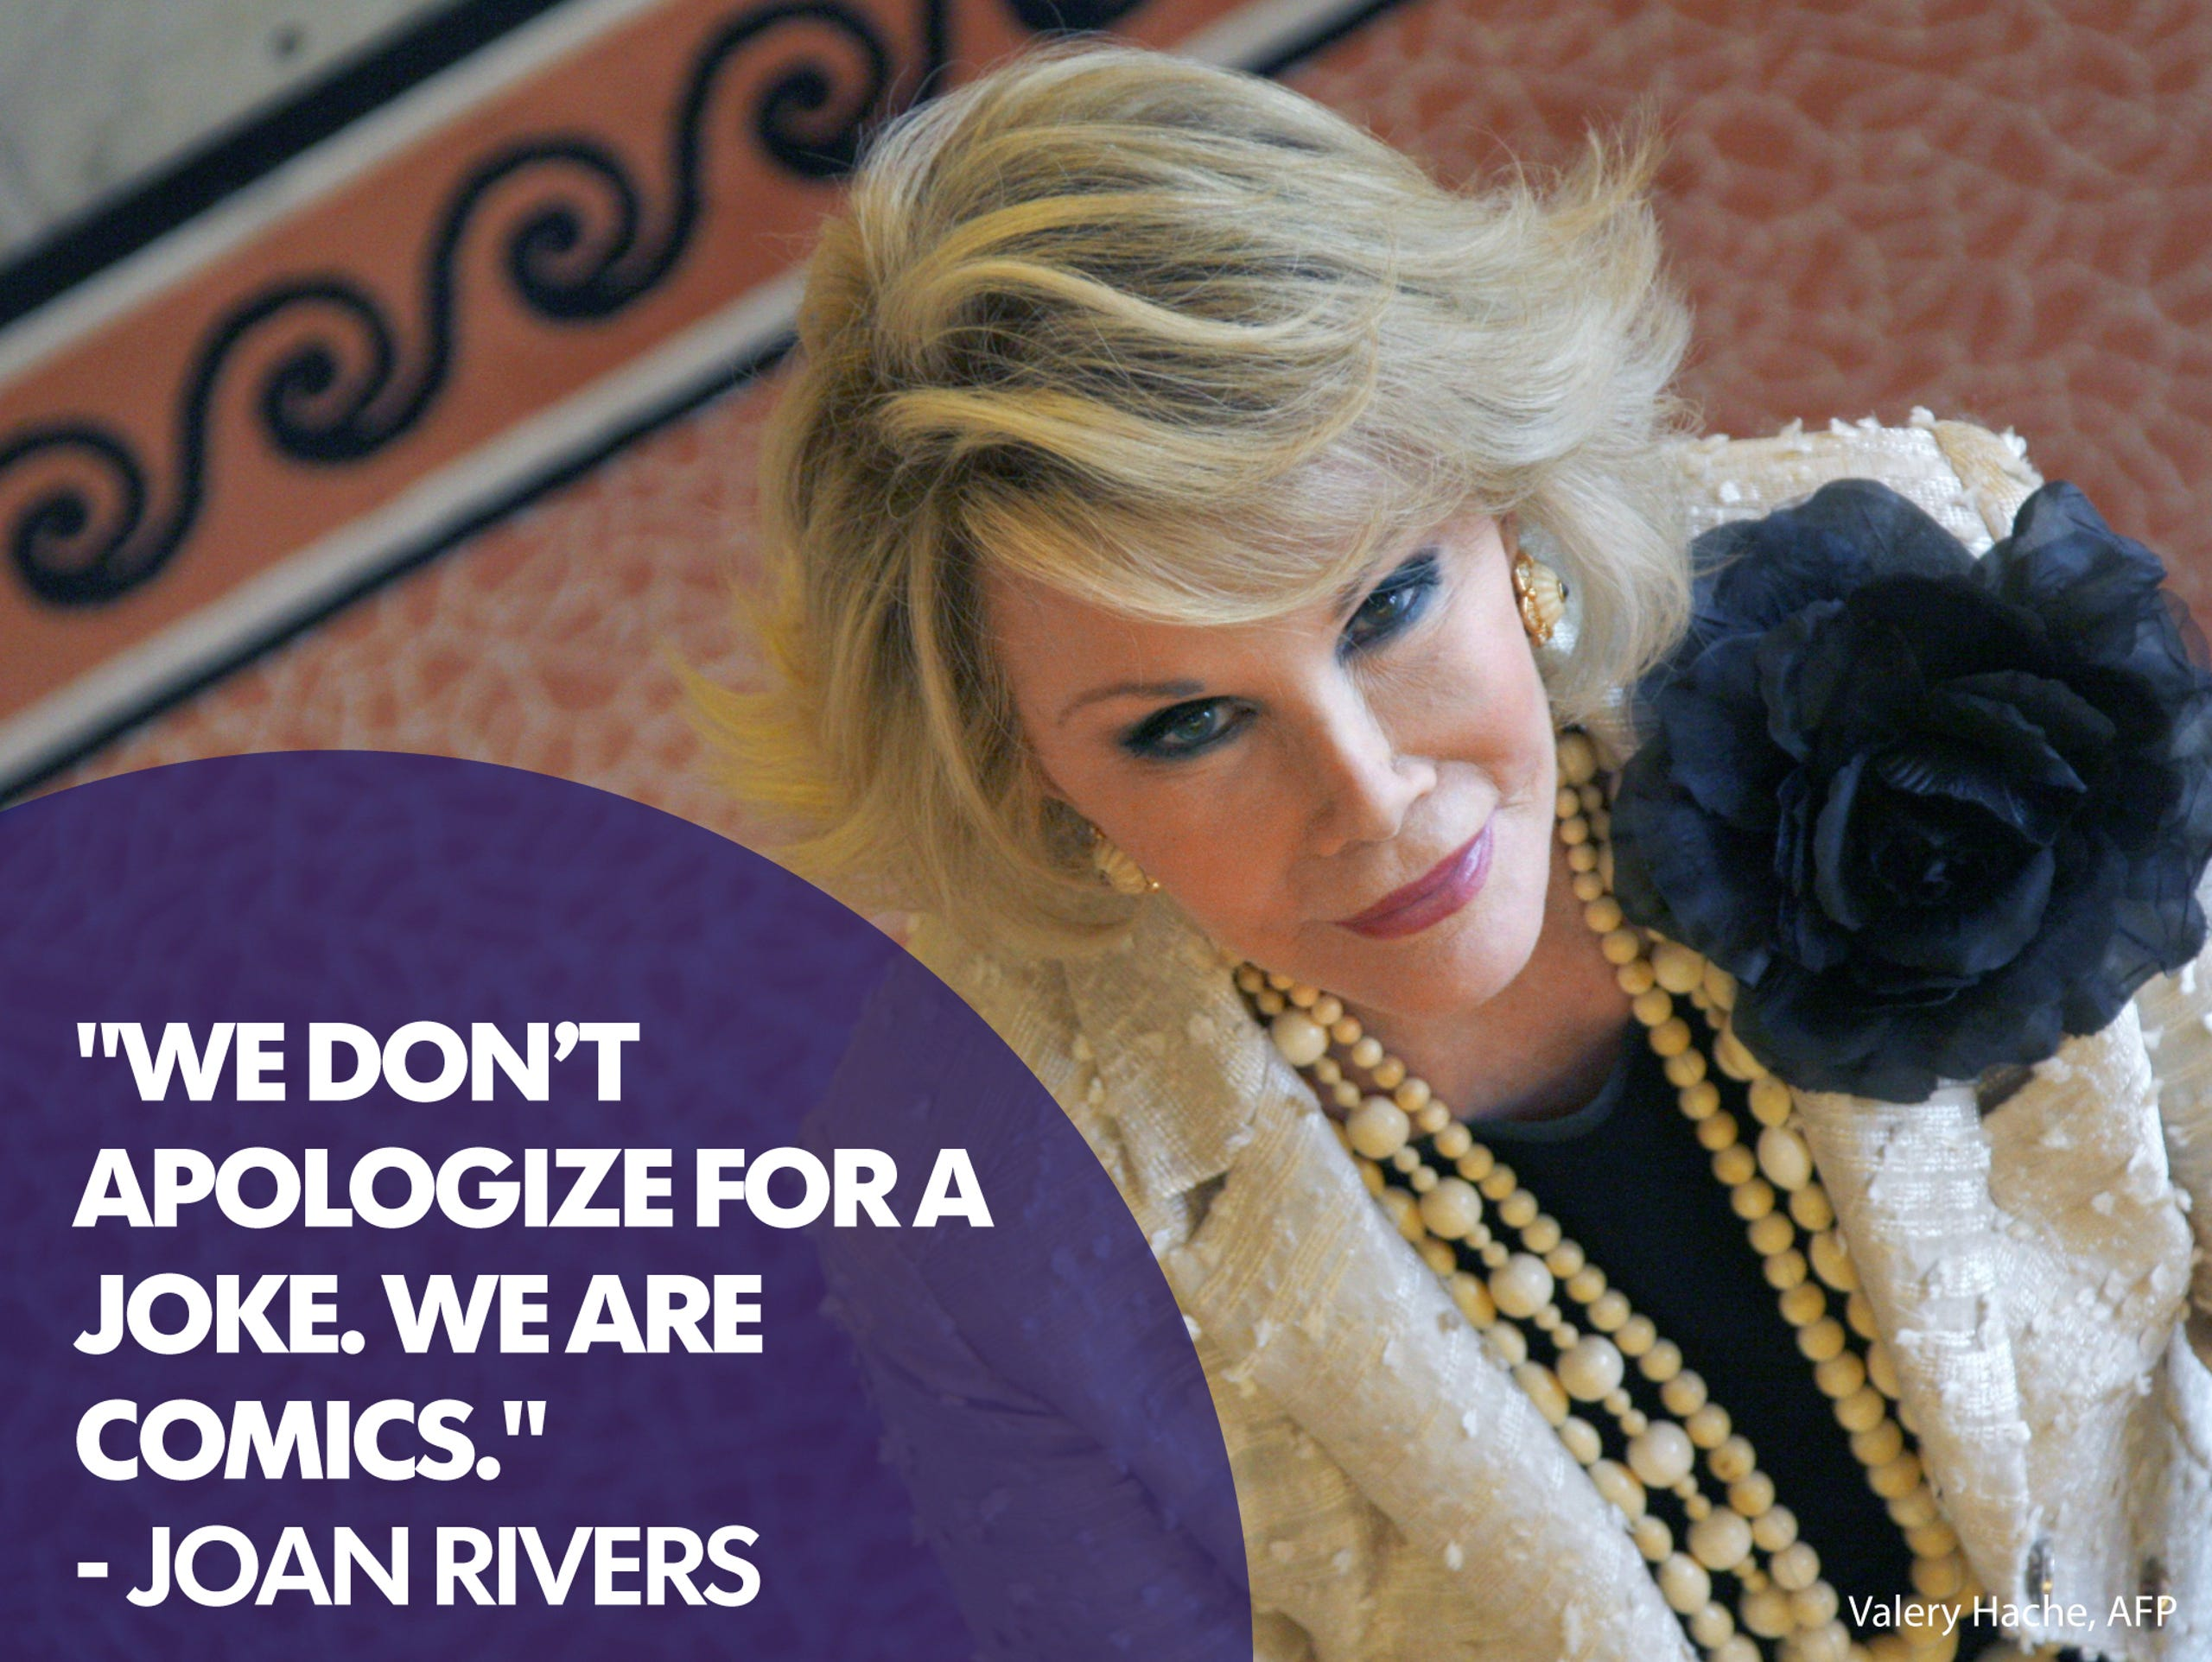 Quotes: Remembering the iconic, irreverent Joan Rivers